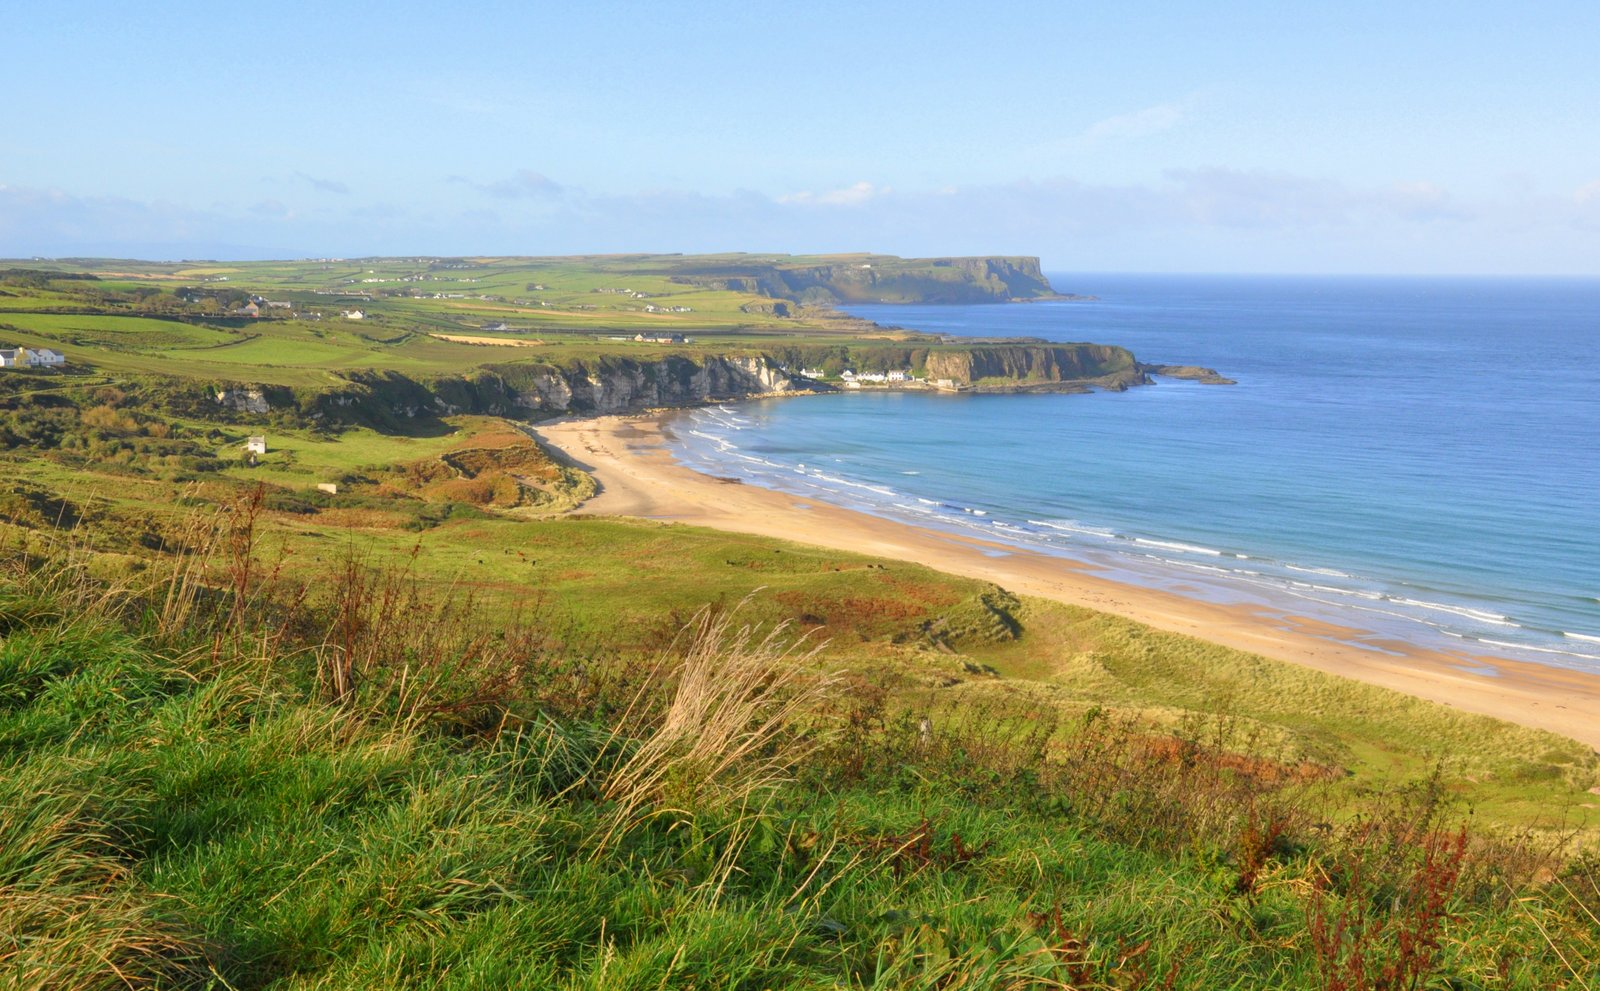 Whitepark Bay, le long de Causeway Coastal route, en Irlande du Nord